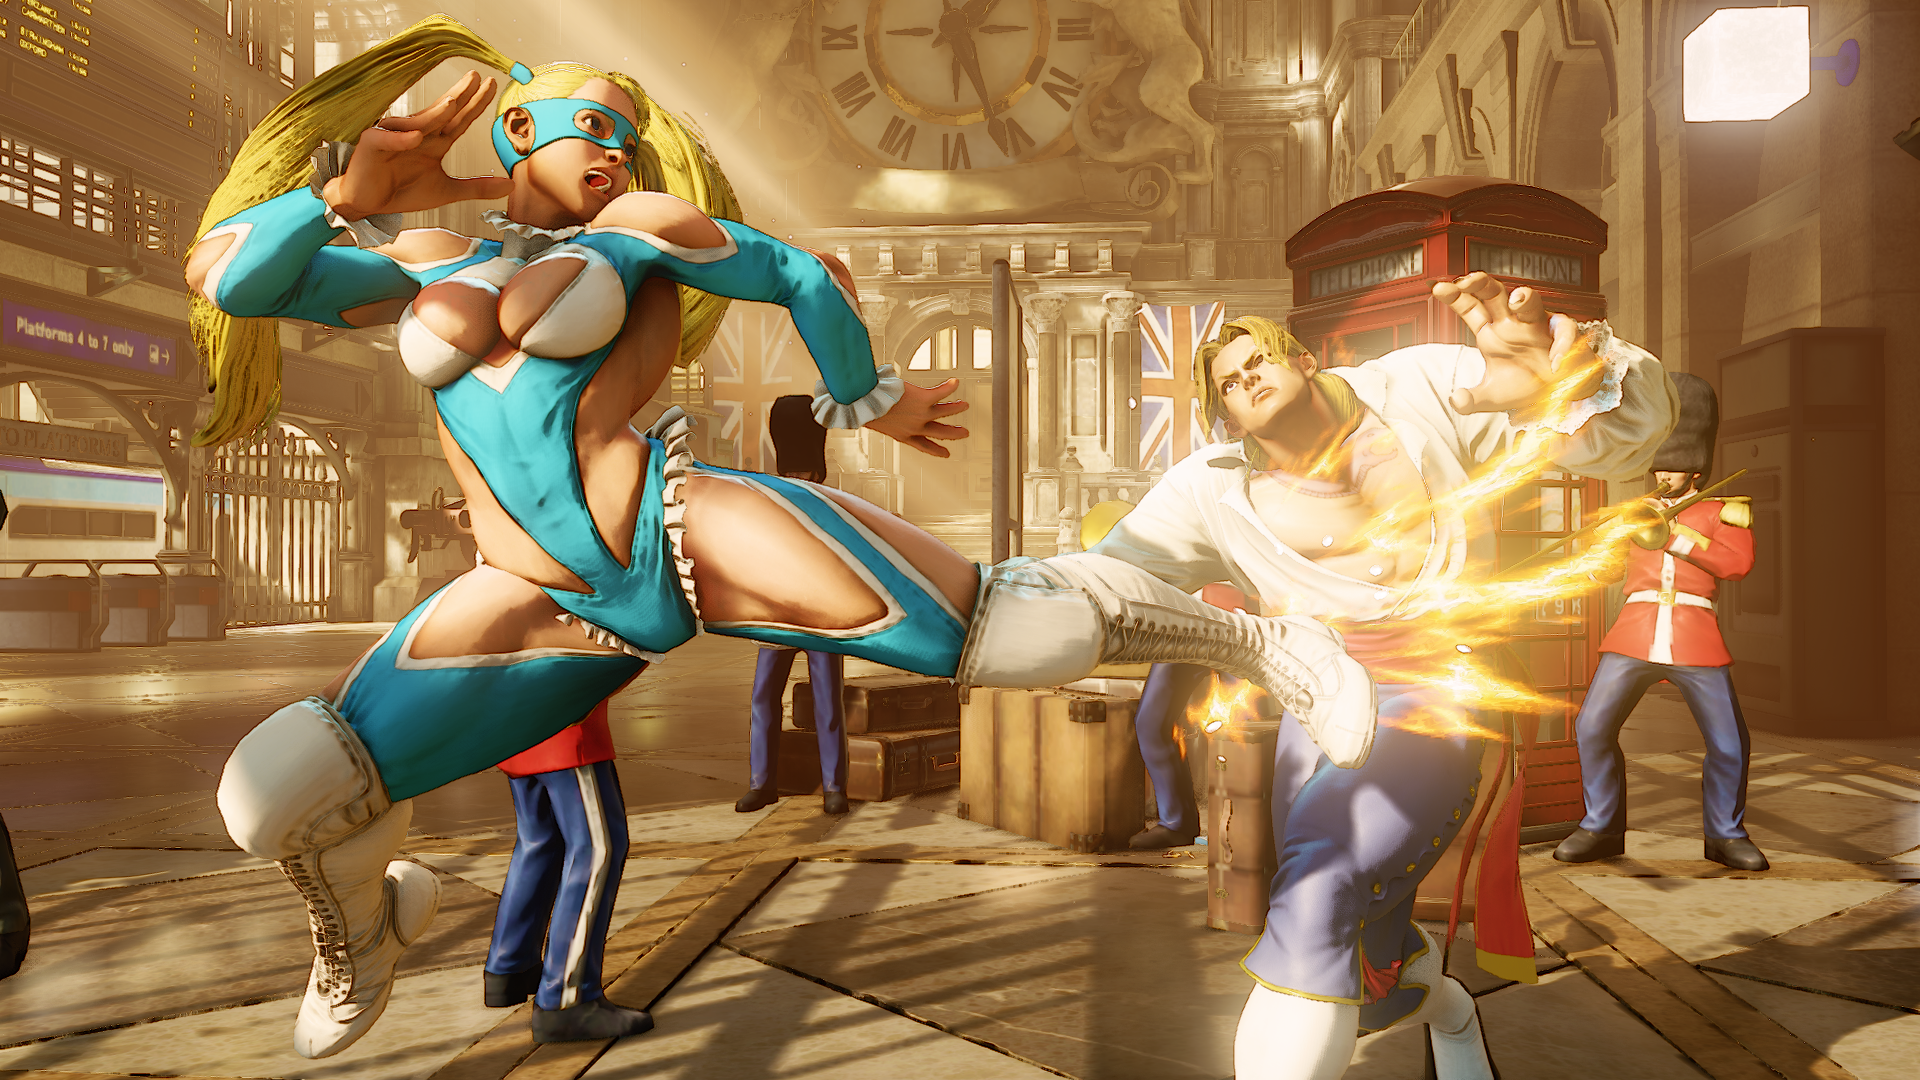 R. Mika Makes Her Awaited Return To Street Fighter